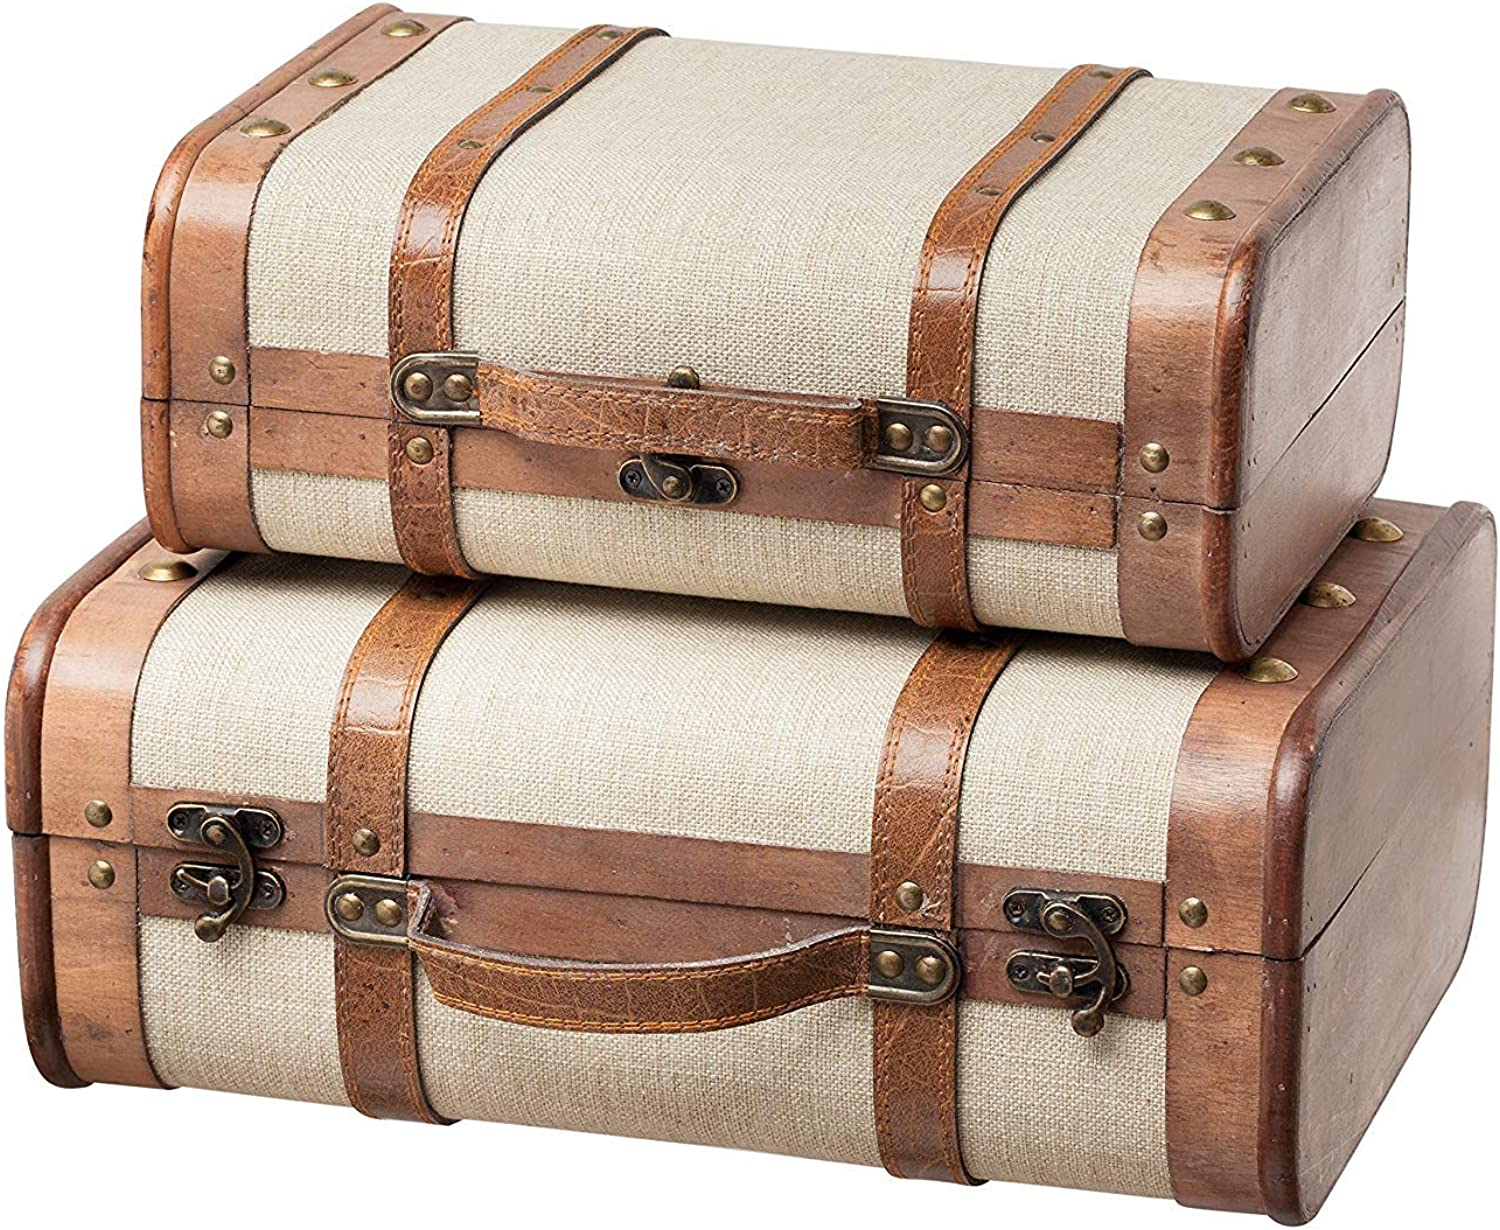 SLPR Decorative Suitcase with Straps (Set of 2 Beige)   Old-Fashioned Antique Vintage Style Nesting Trunks for Shelf Home Decor Birthday Parties Wedding Decoration Displays Crafts Photoshoots